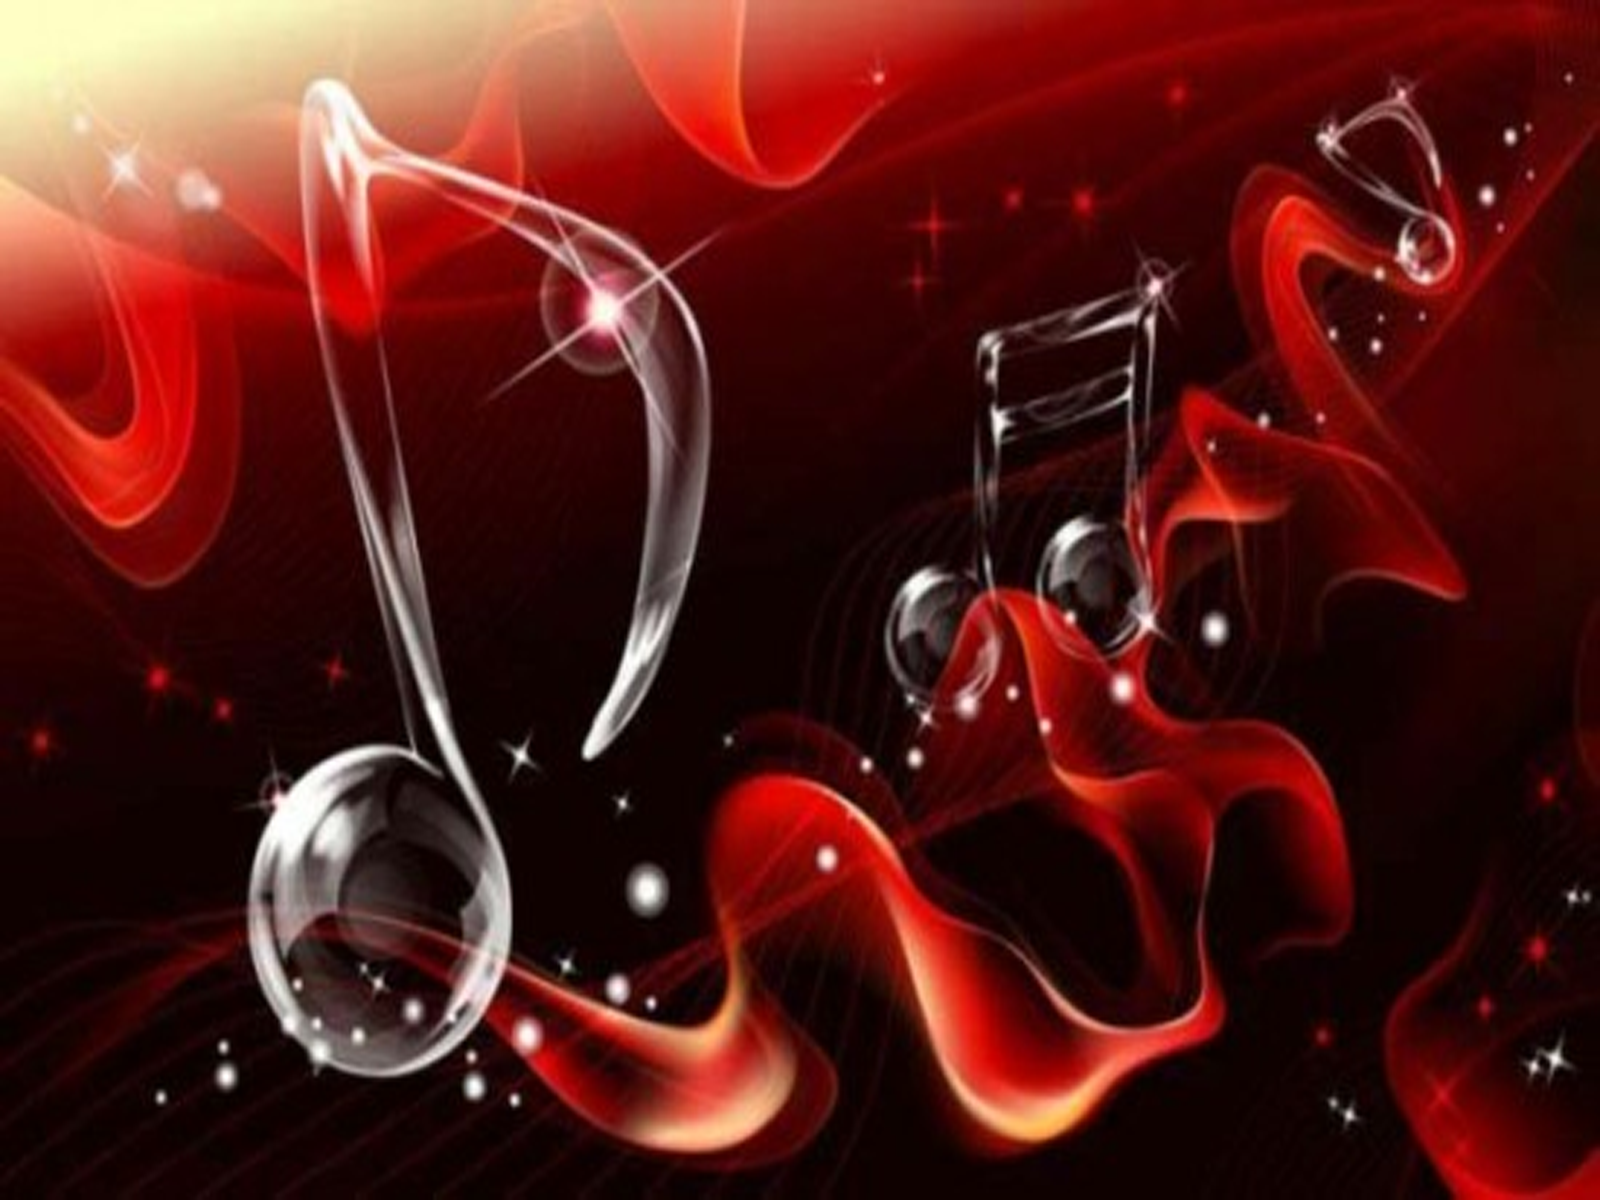 download music wallpaper wide fd0c mbuh xyz